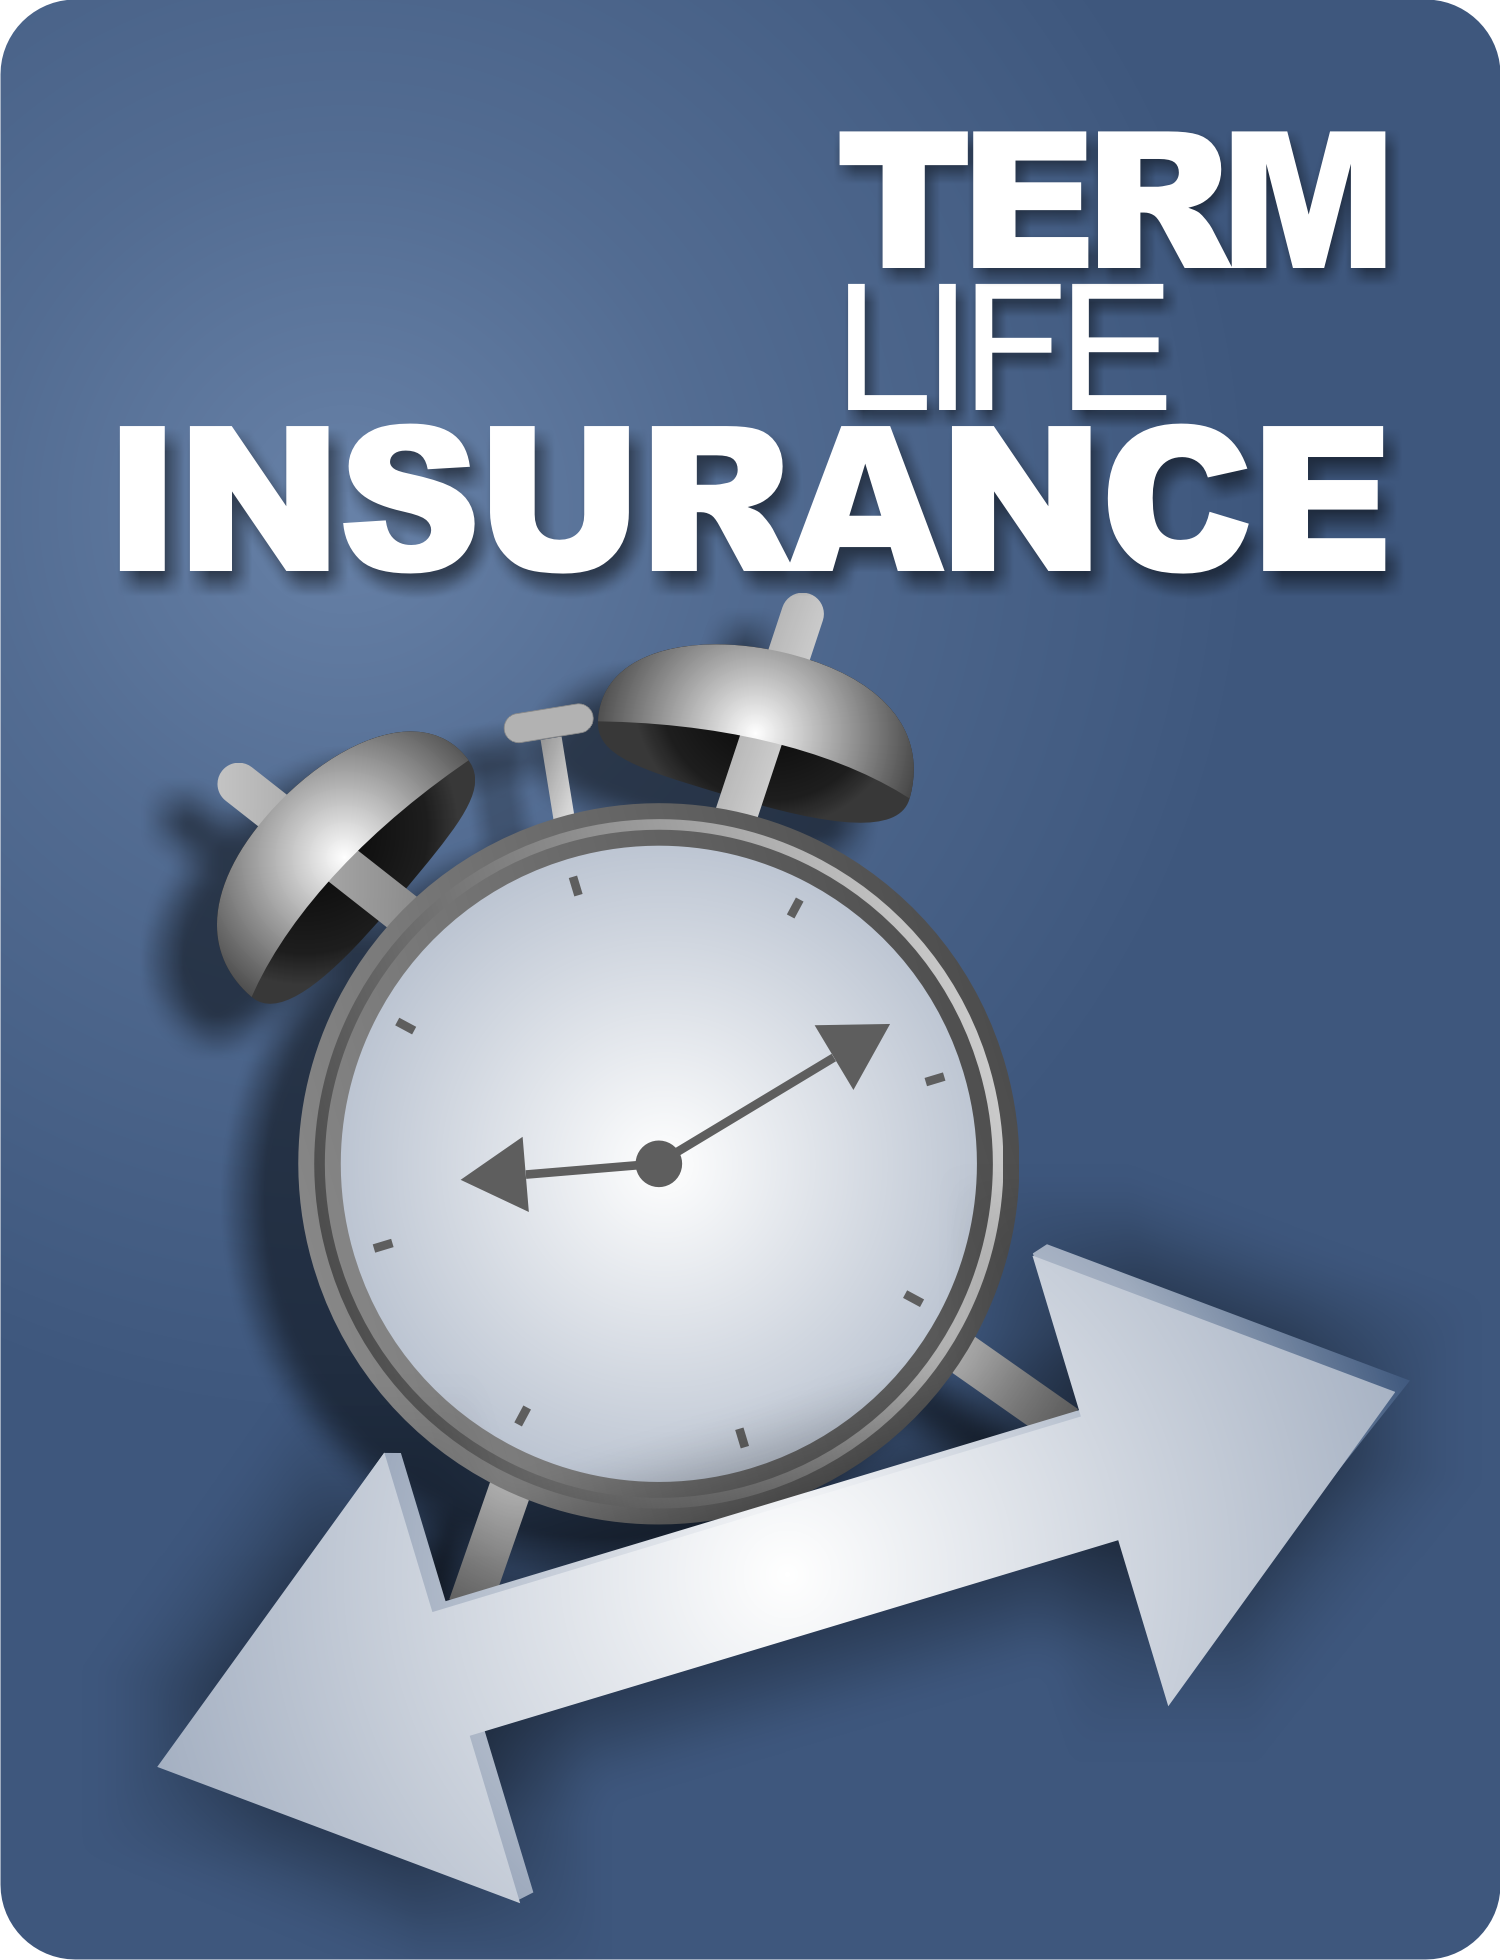 Whole Life Insurance Quotes For Seniors Endearing Life Insurance For Seniors Life Insurance Insurance Next Day